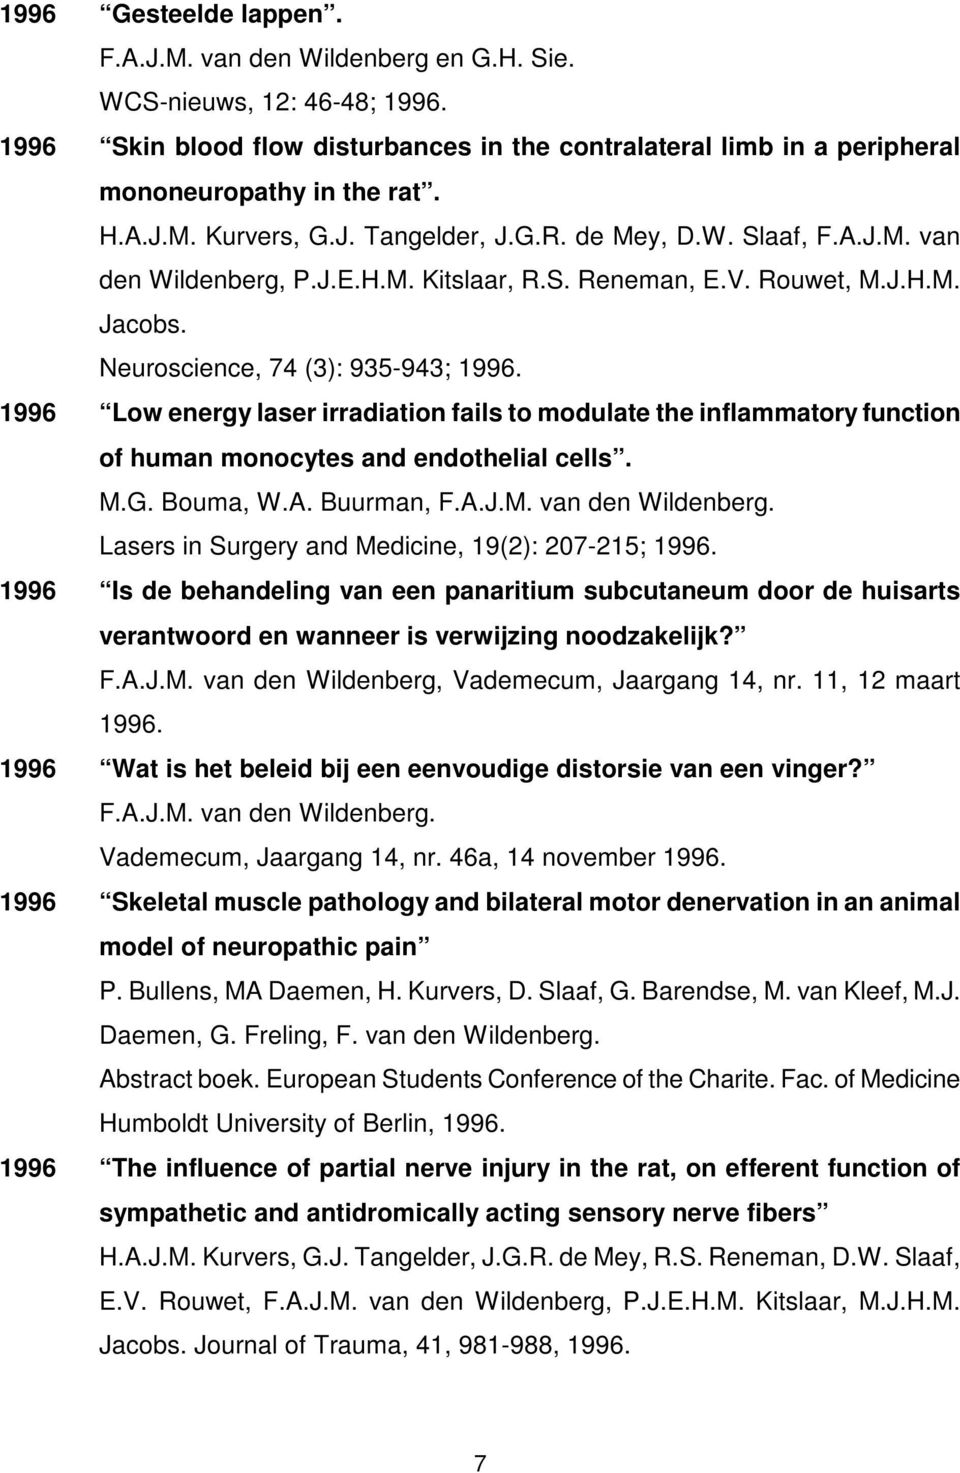 1996 Low energy laser irradiation fails to modulate the inflammatory function of human monocytes and endothelial cells. M.G. Bouma, W.A. Buurman, F.A.J.M. van den Wildenberg.